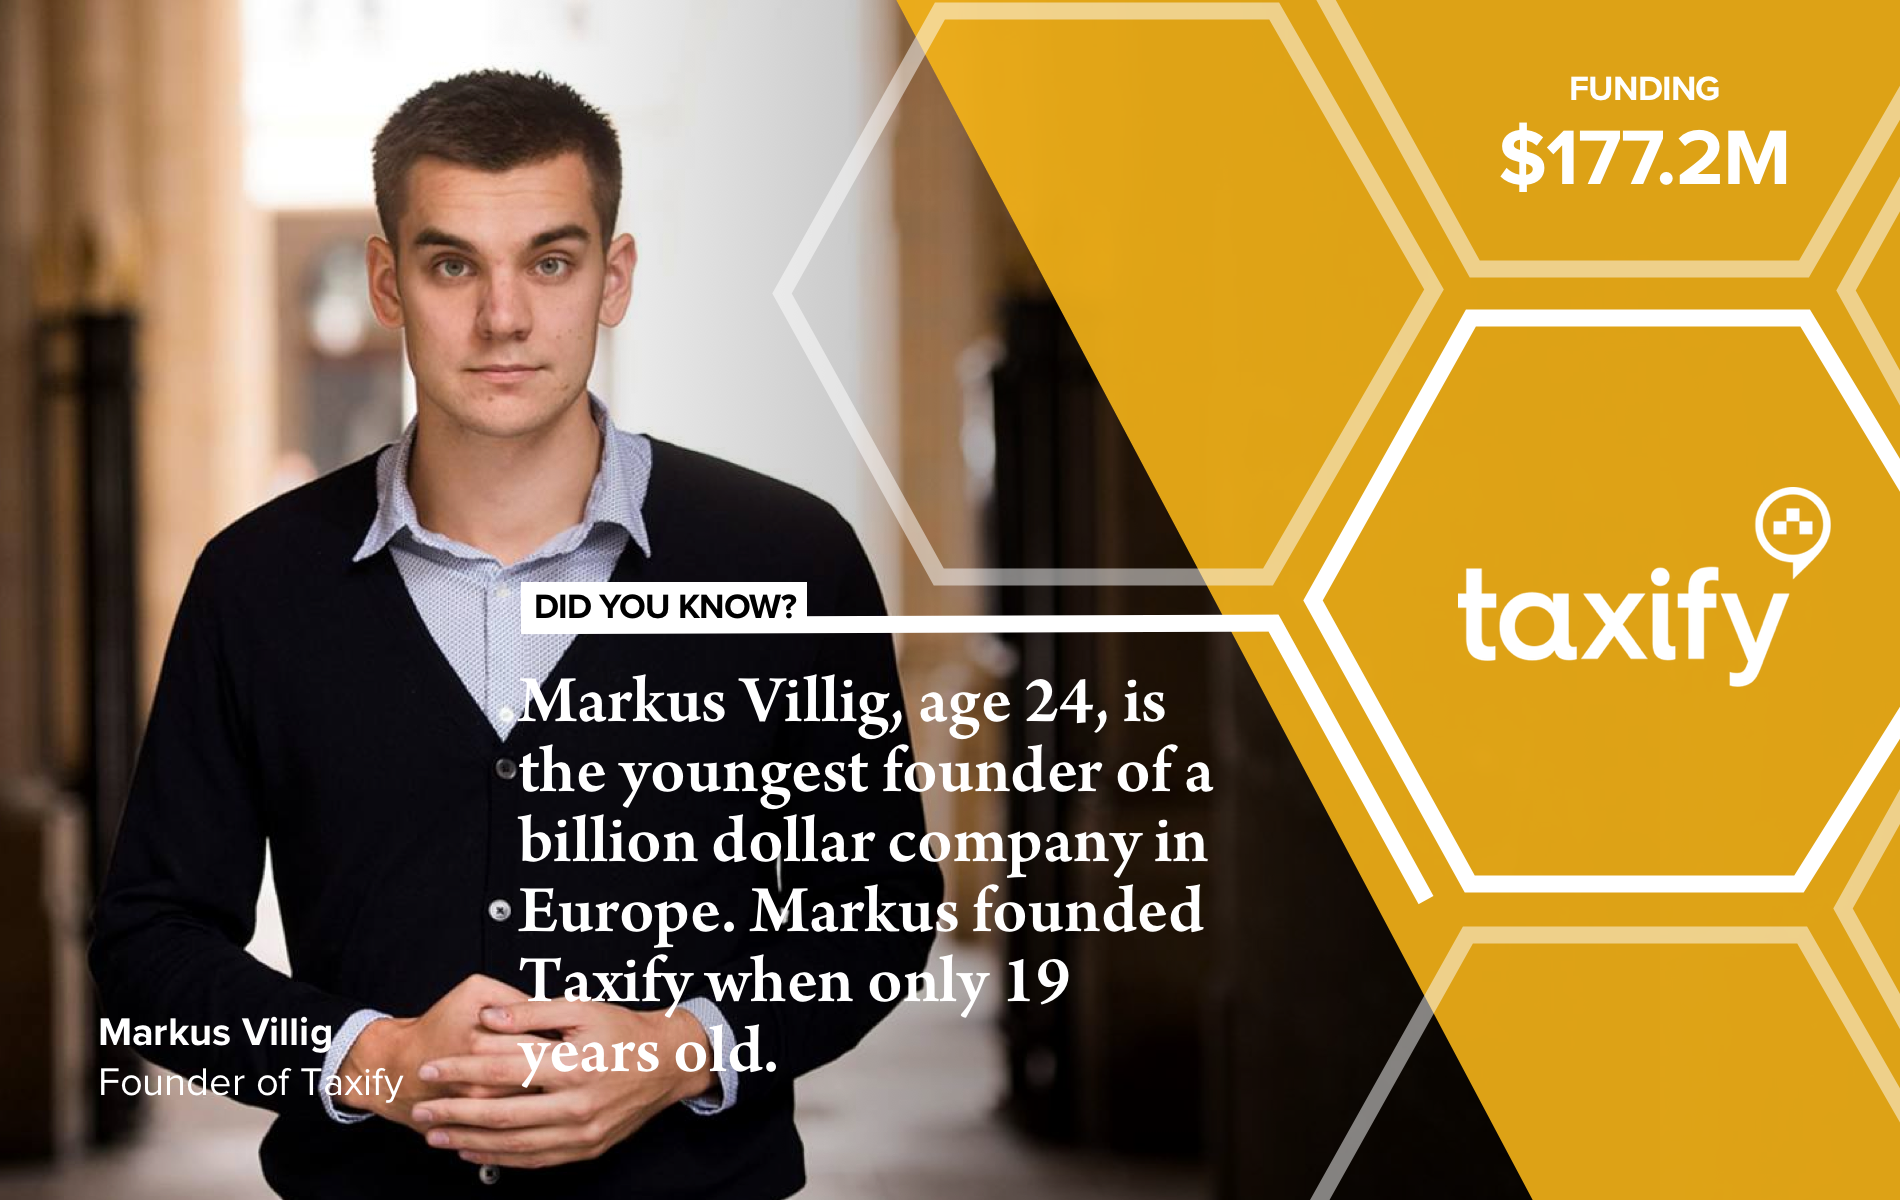 Markus Villig, the co-founder of Taxify